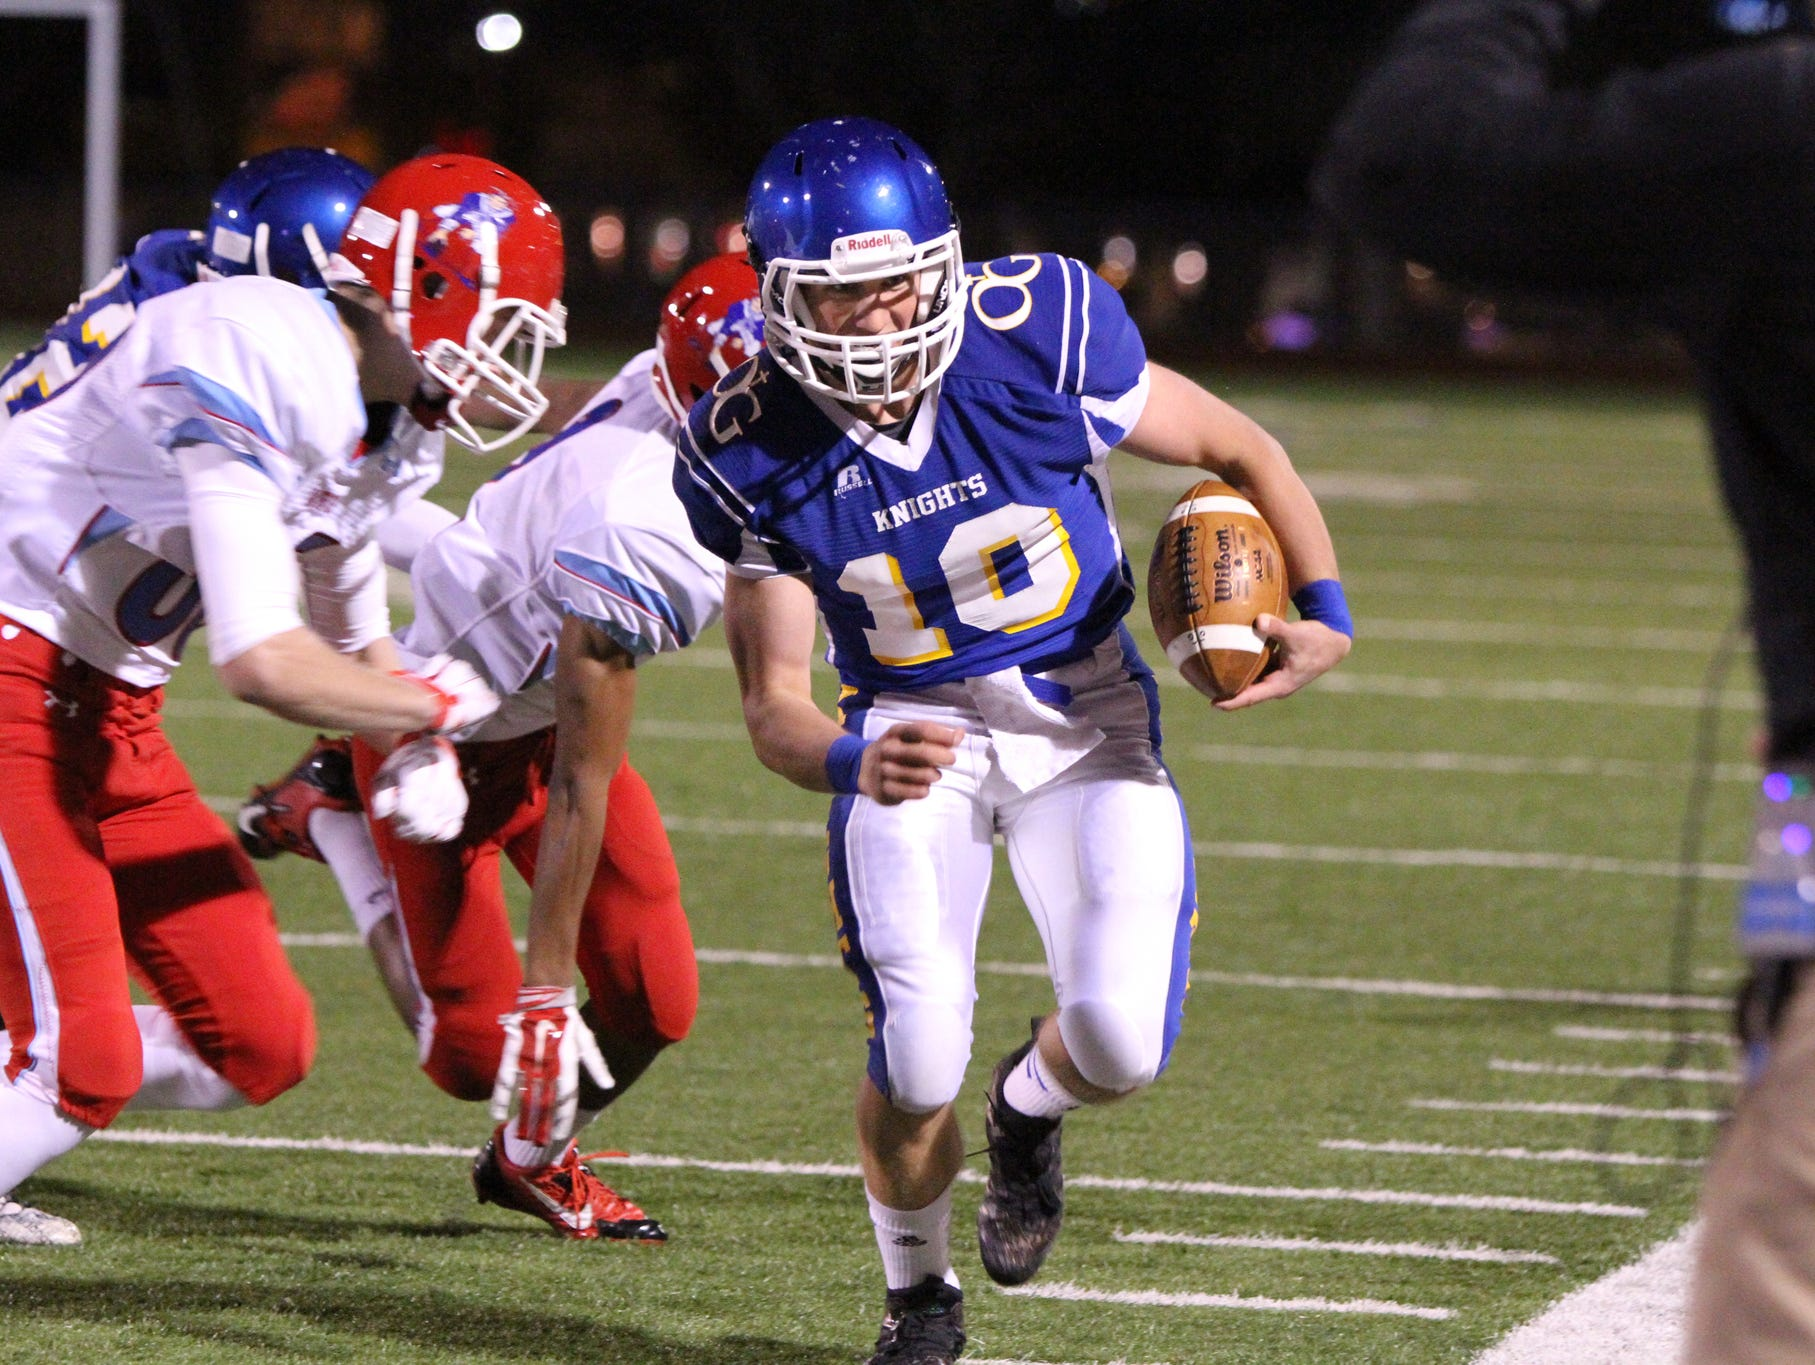 Luke Fritsch of O'Gorman is forced out of bounds by several Lincoln defenders during Thursday night's game at O'Gorman.